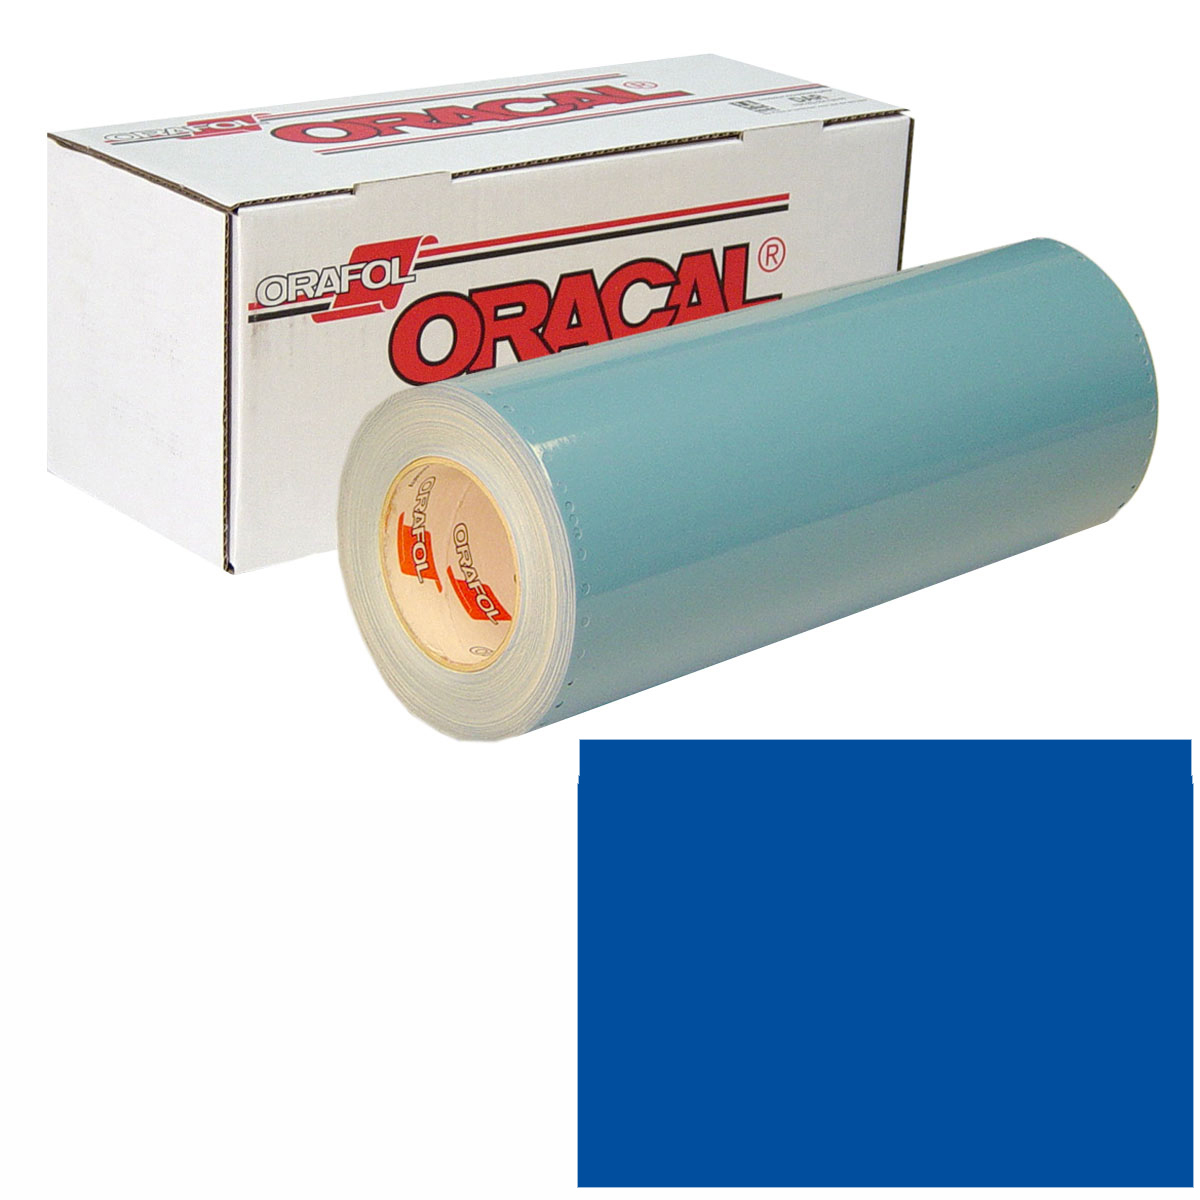 ORACAL 751 15In X 50Yd 057 Traffic Blue